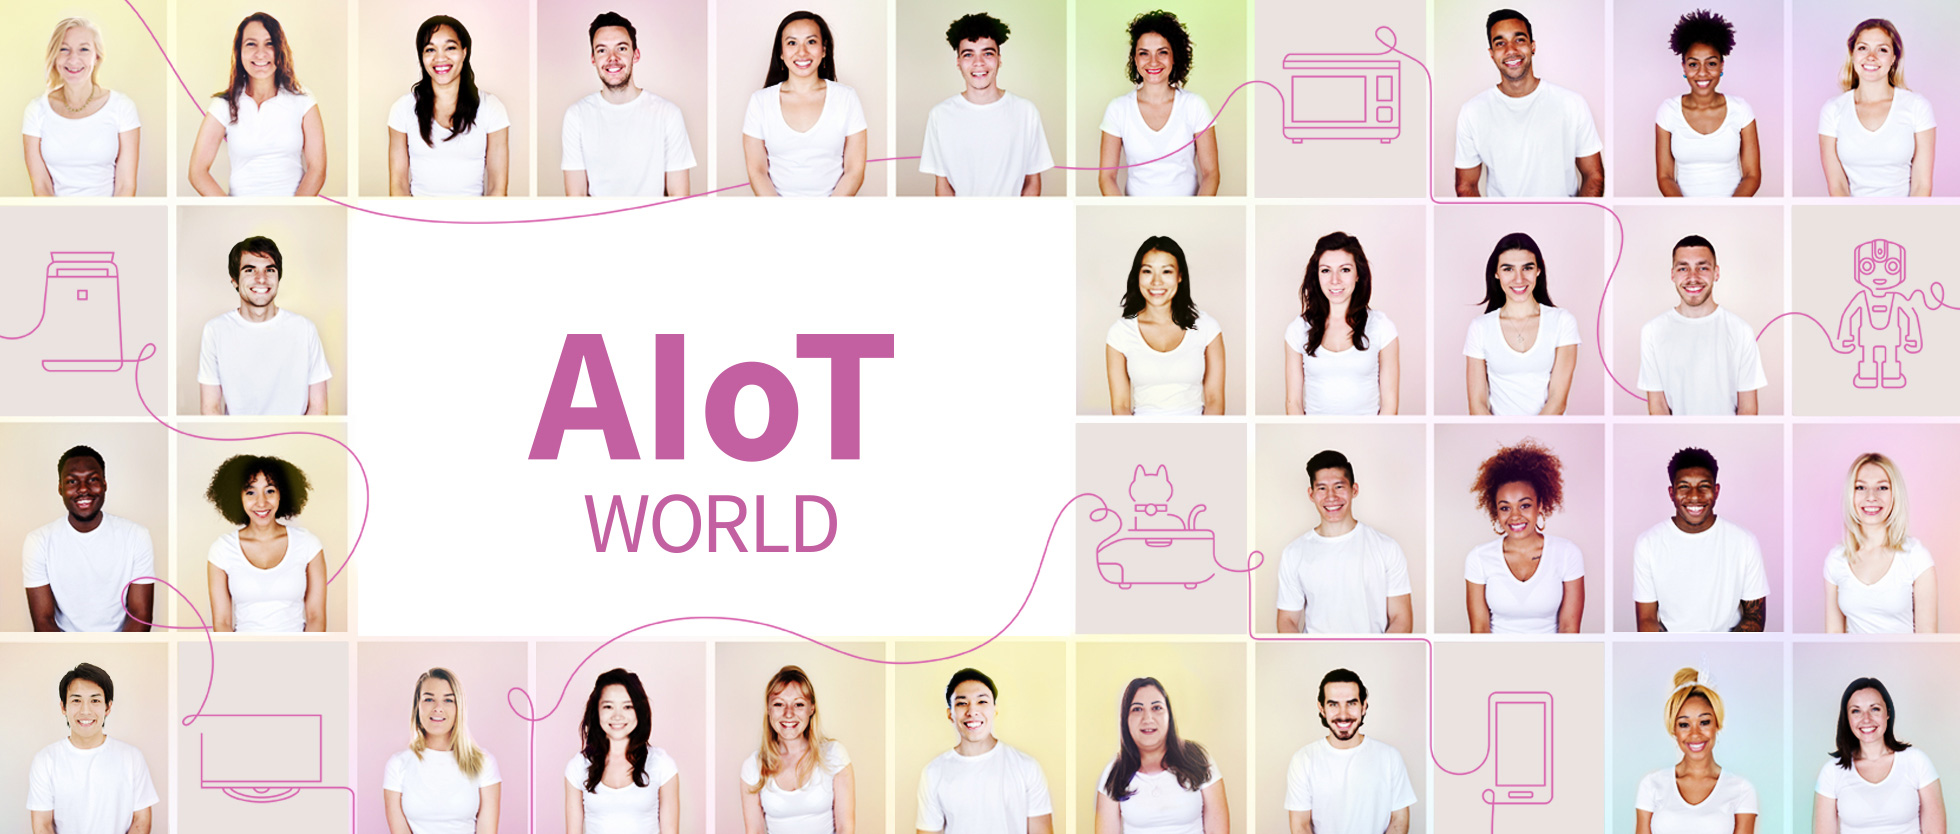 AIoT World